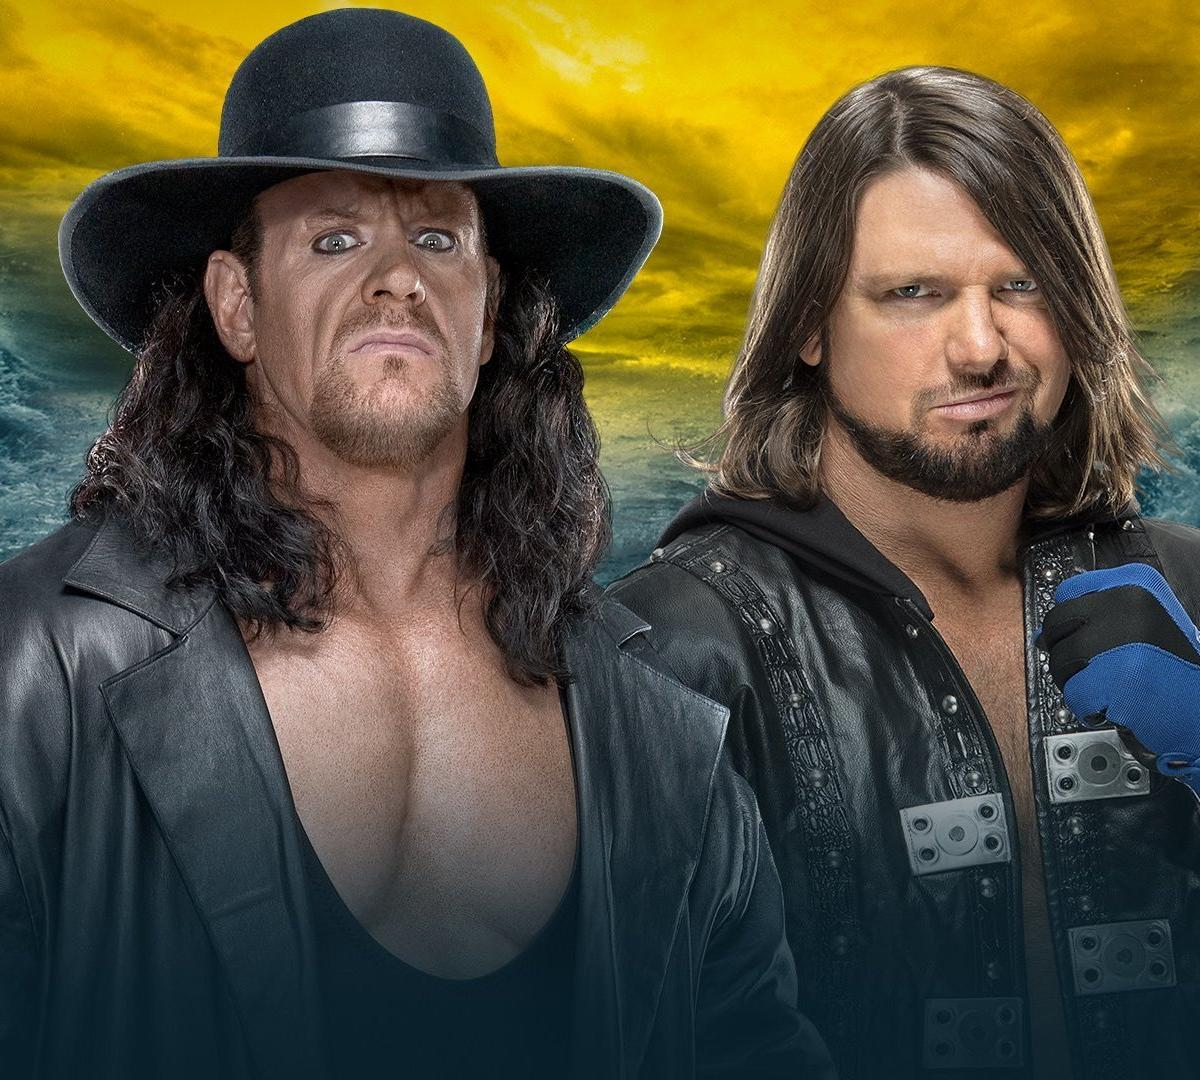 Will This Finally Be the Undertaker's Final Match at WrestleMania?